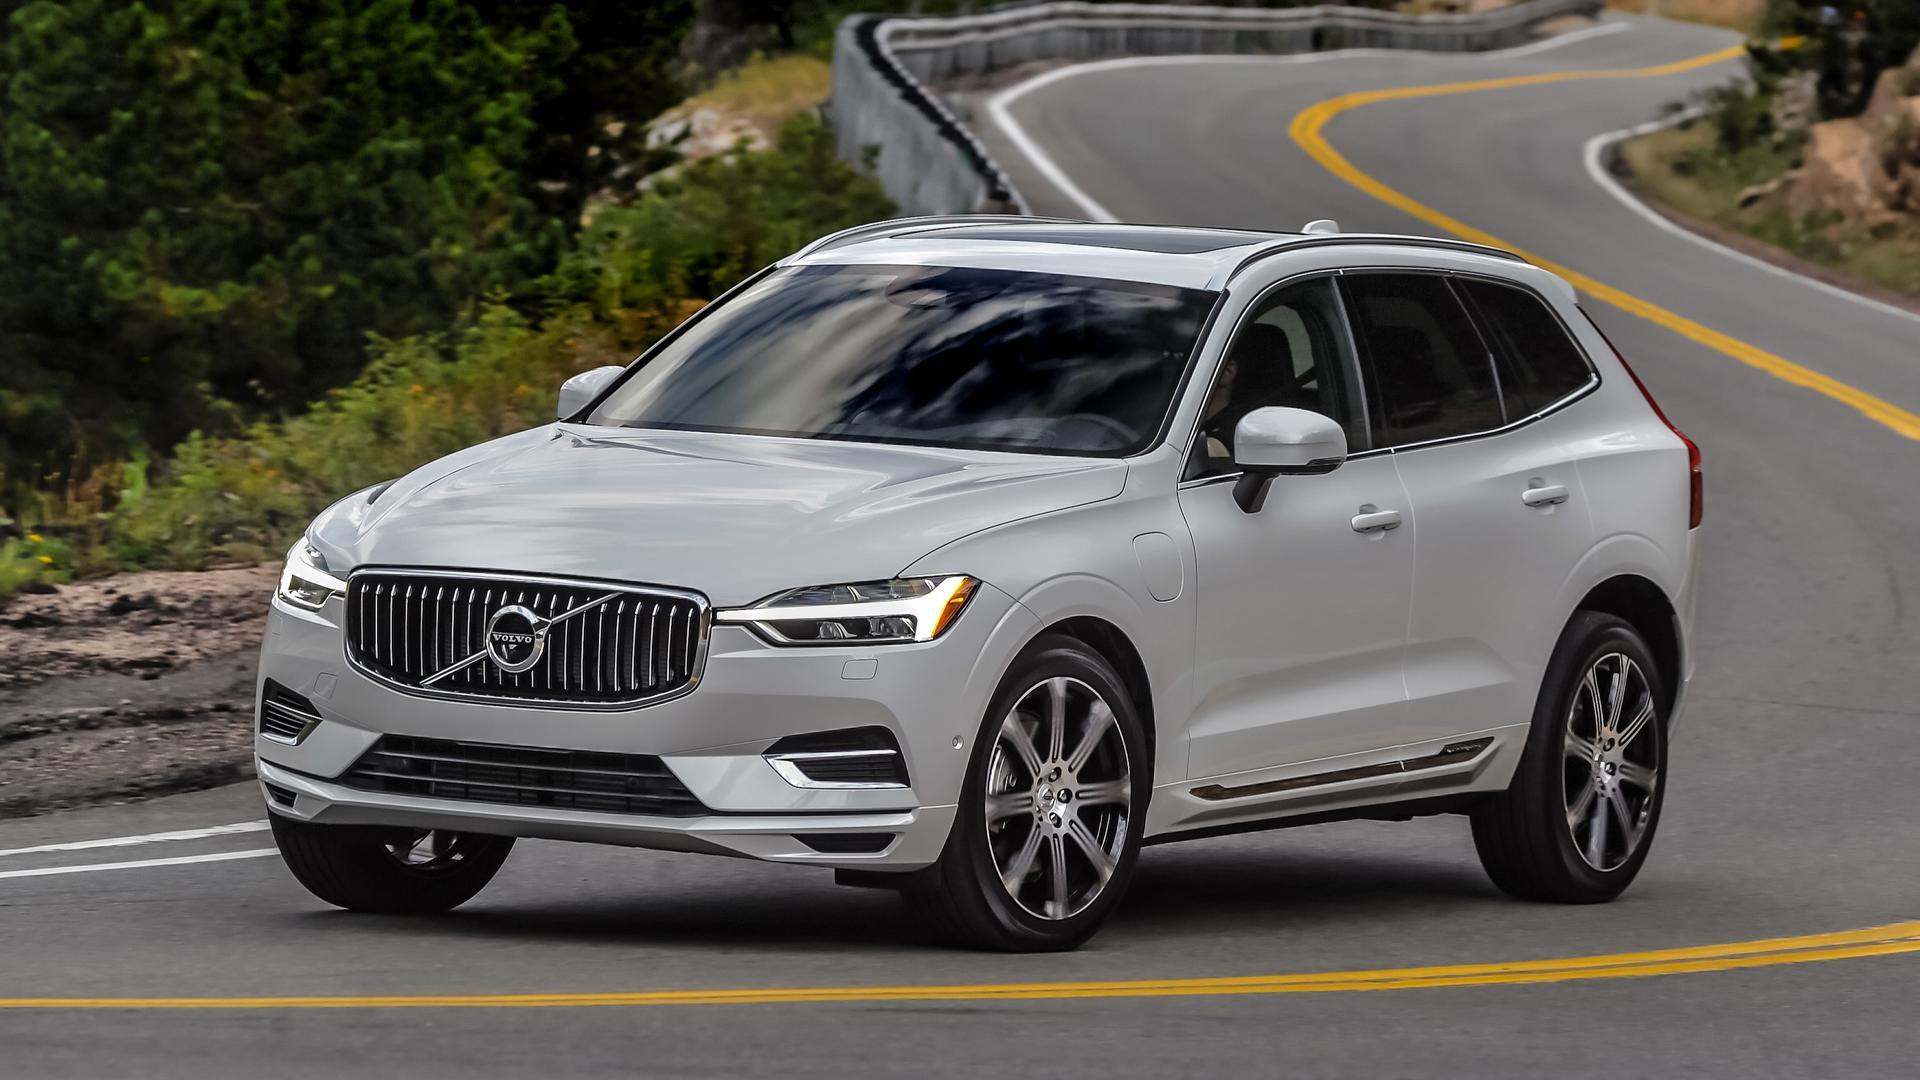 2018 Volvo Xc60 T8 Review Performance And Green In One